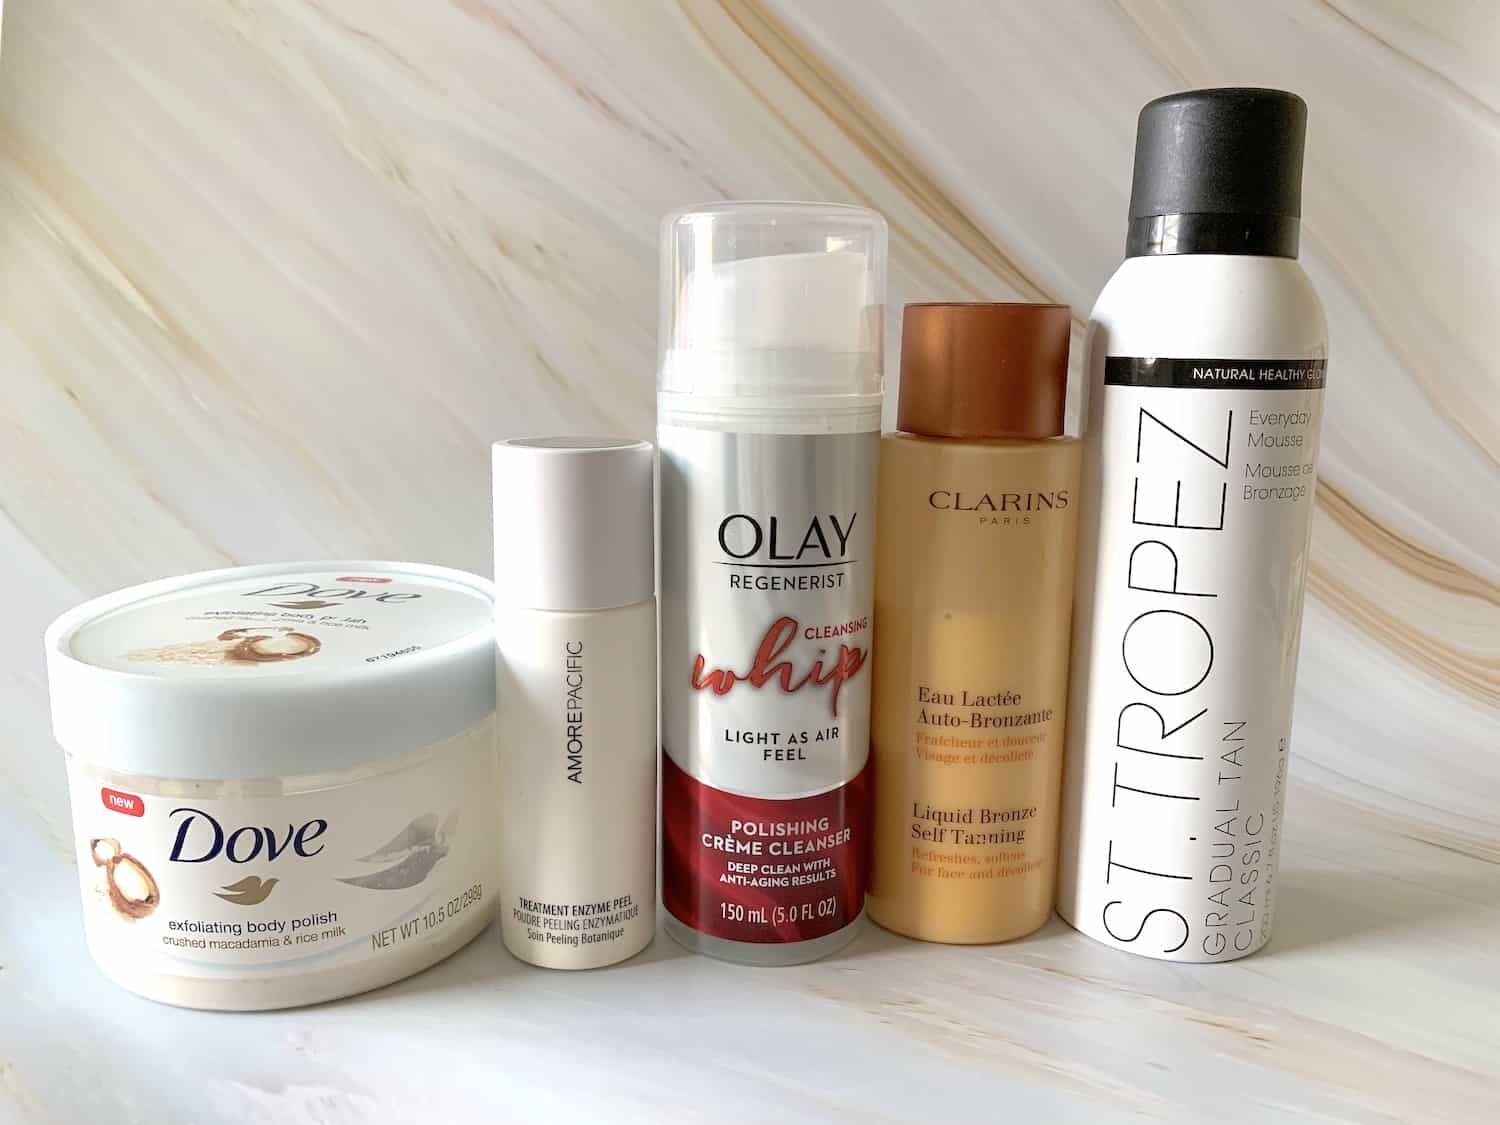 Self Tanning Products - Clarins Liquid Bronze, St Tropez Gradual Tan Classic Mousse, Dove Body Polish, Loreal Sublim Bronze Self Tanning Towelettes, Olay Whip Polishing Cleanser, Amore Pacific Treatment Enzyme Peel